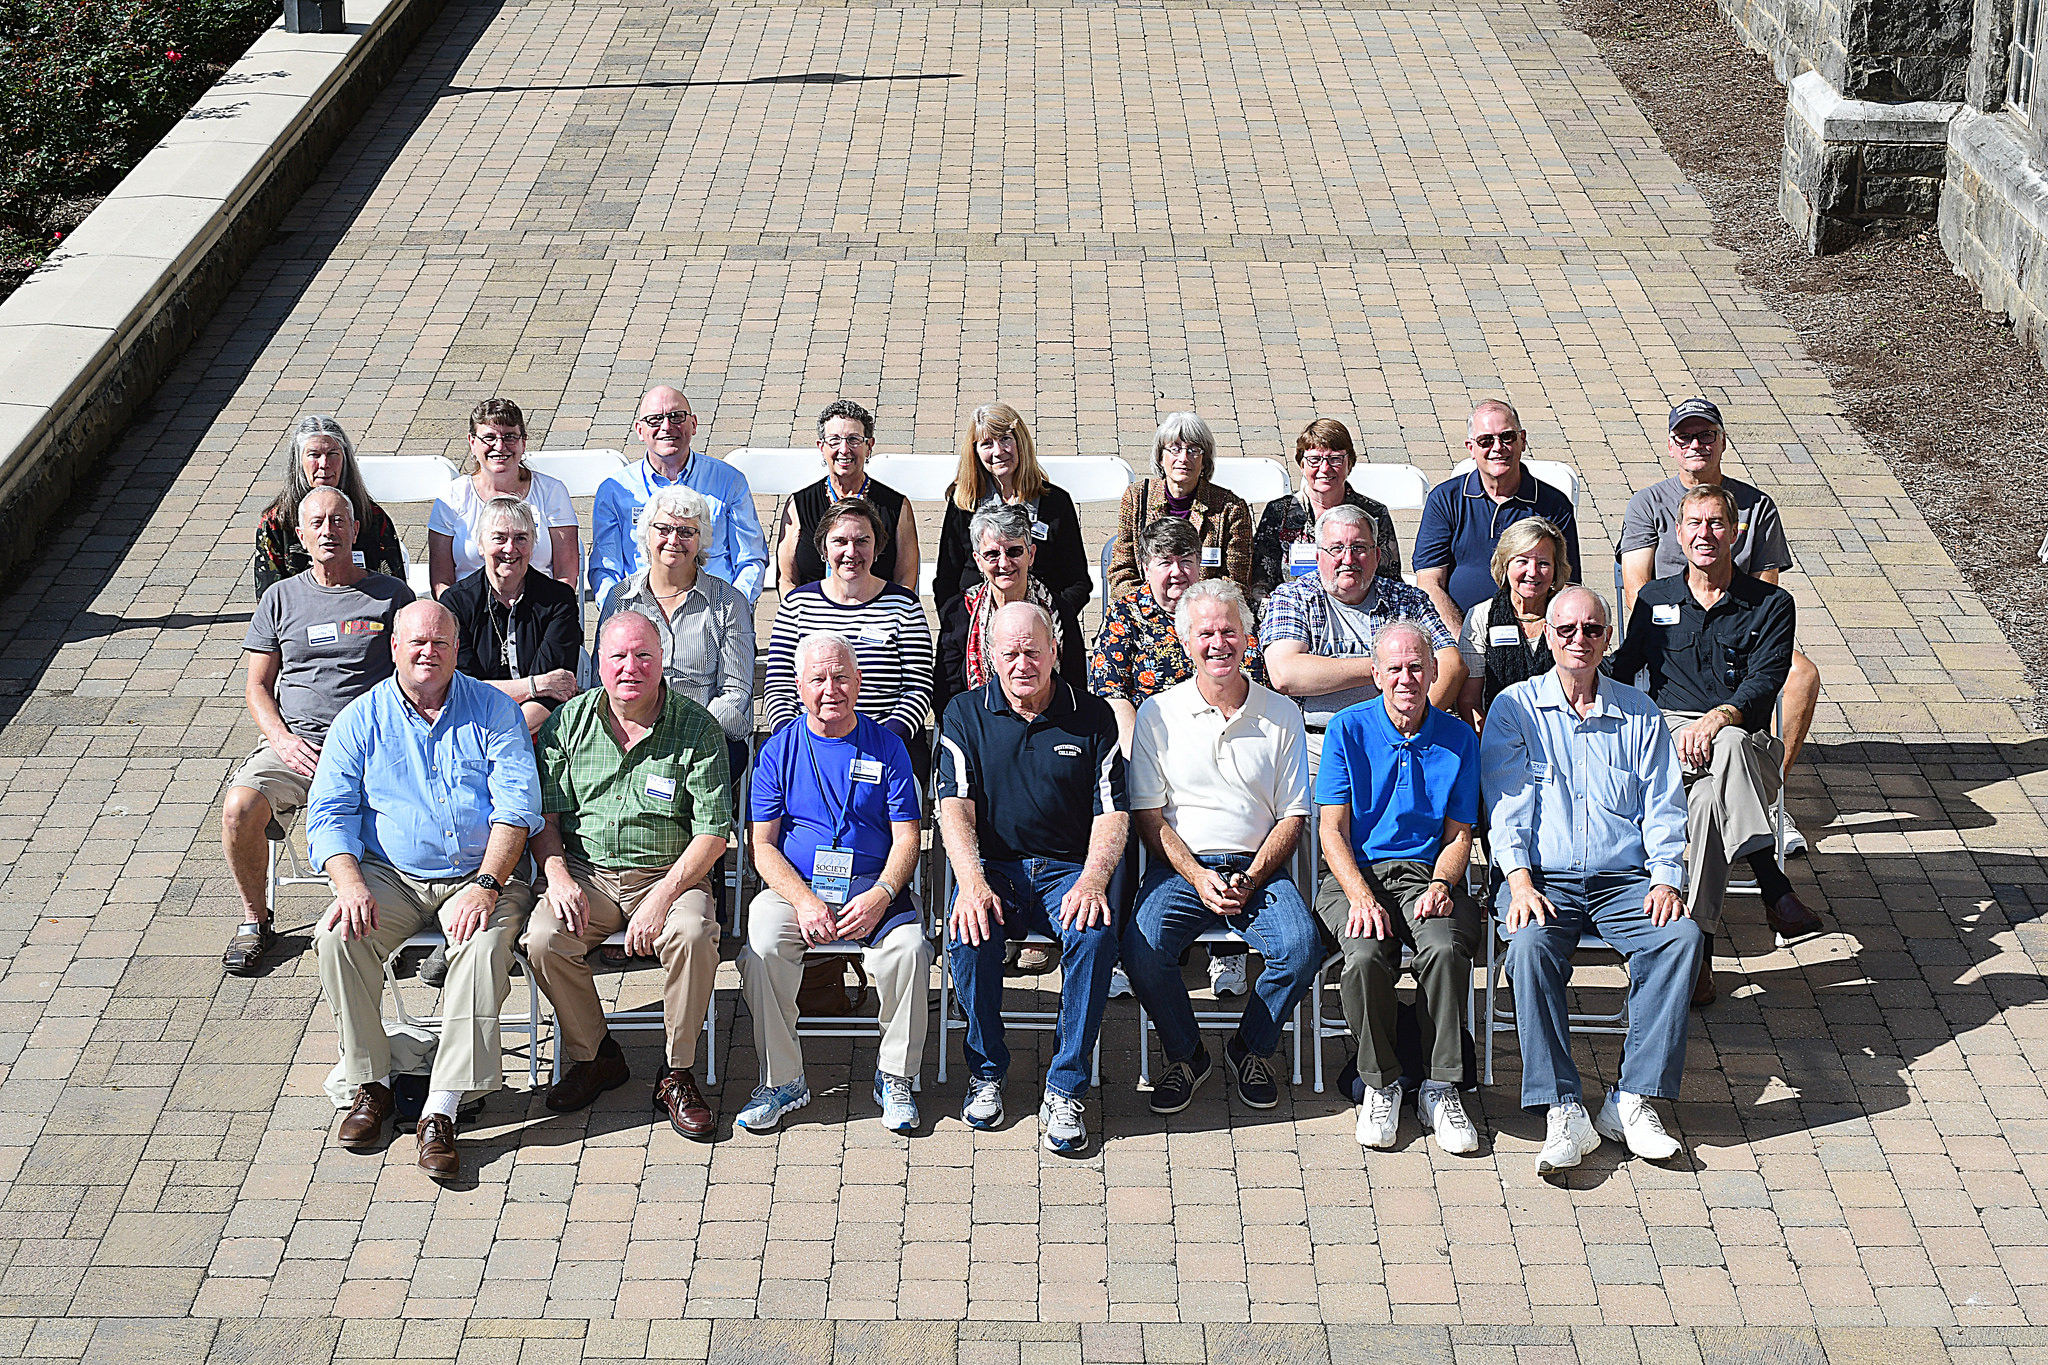 Reunion Photo for the Classes of 1971, 1972 and 1973